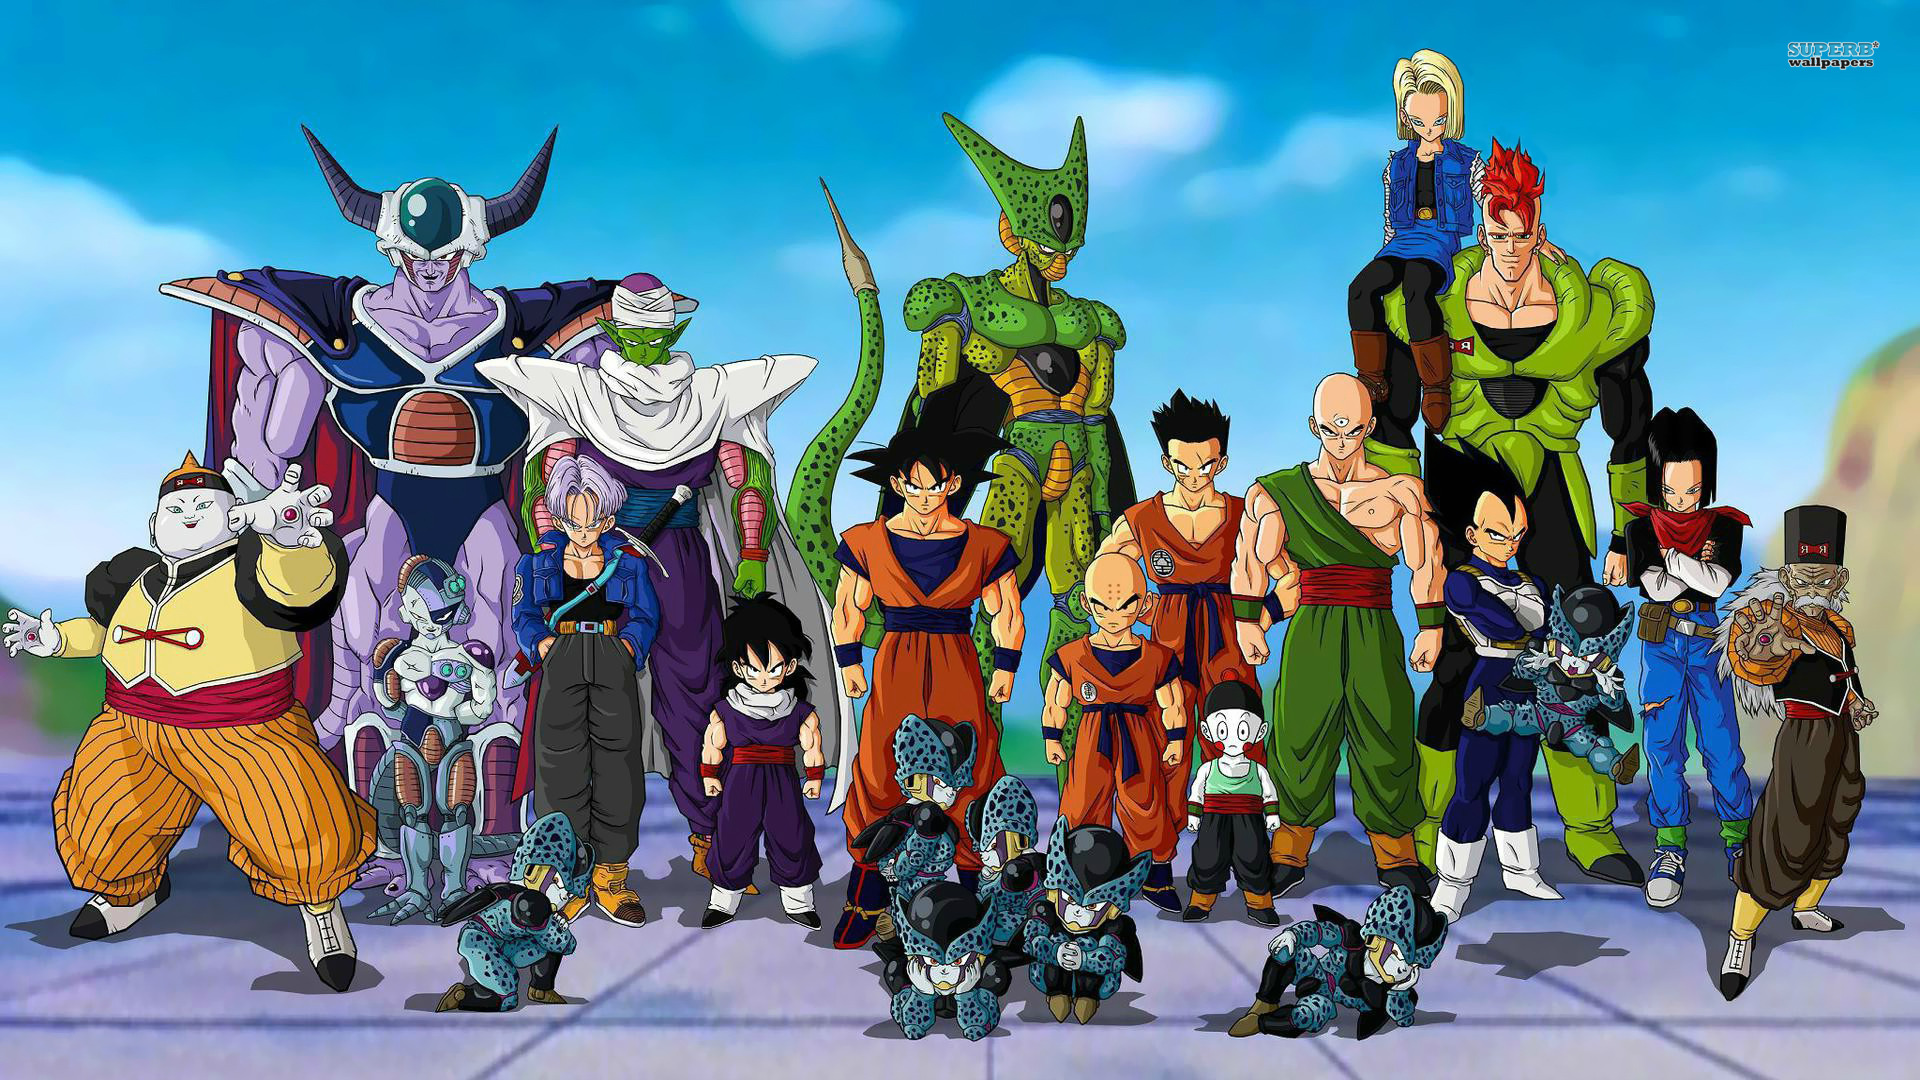 Dragon Ball Z wallpaper 1920x1080 jpg